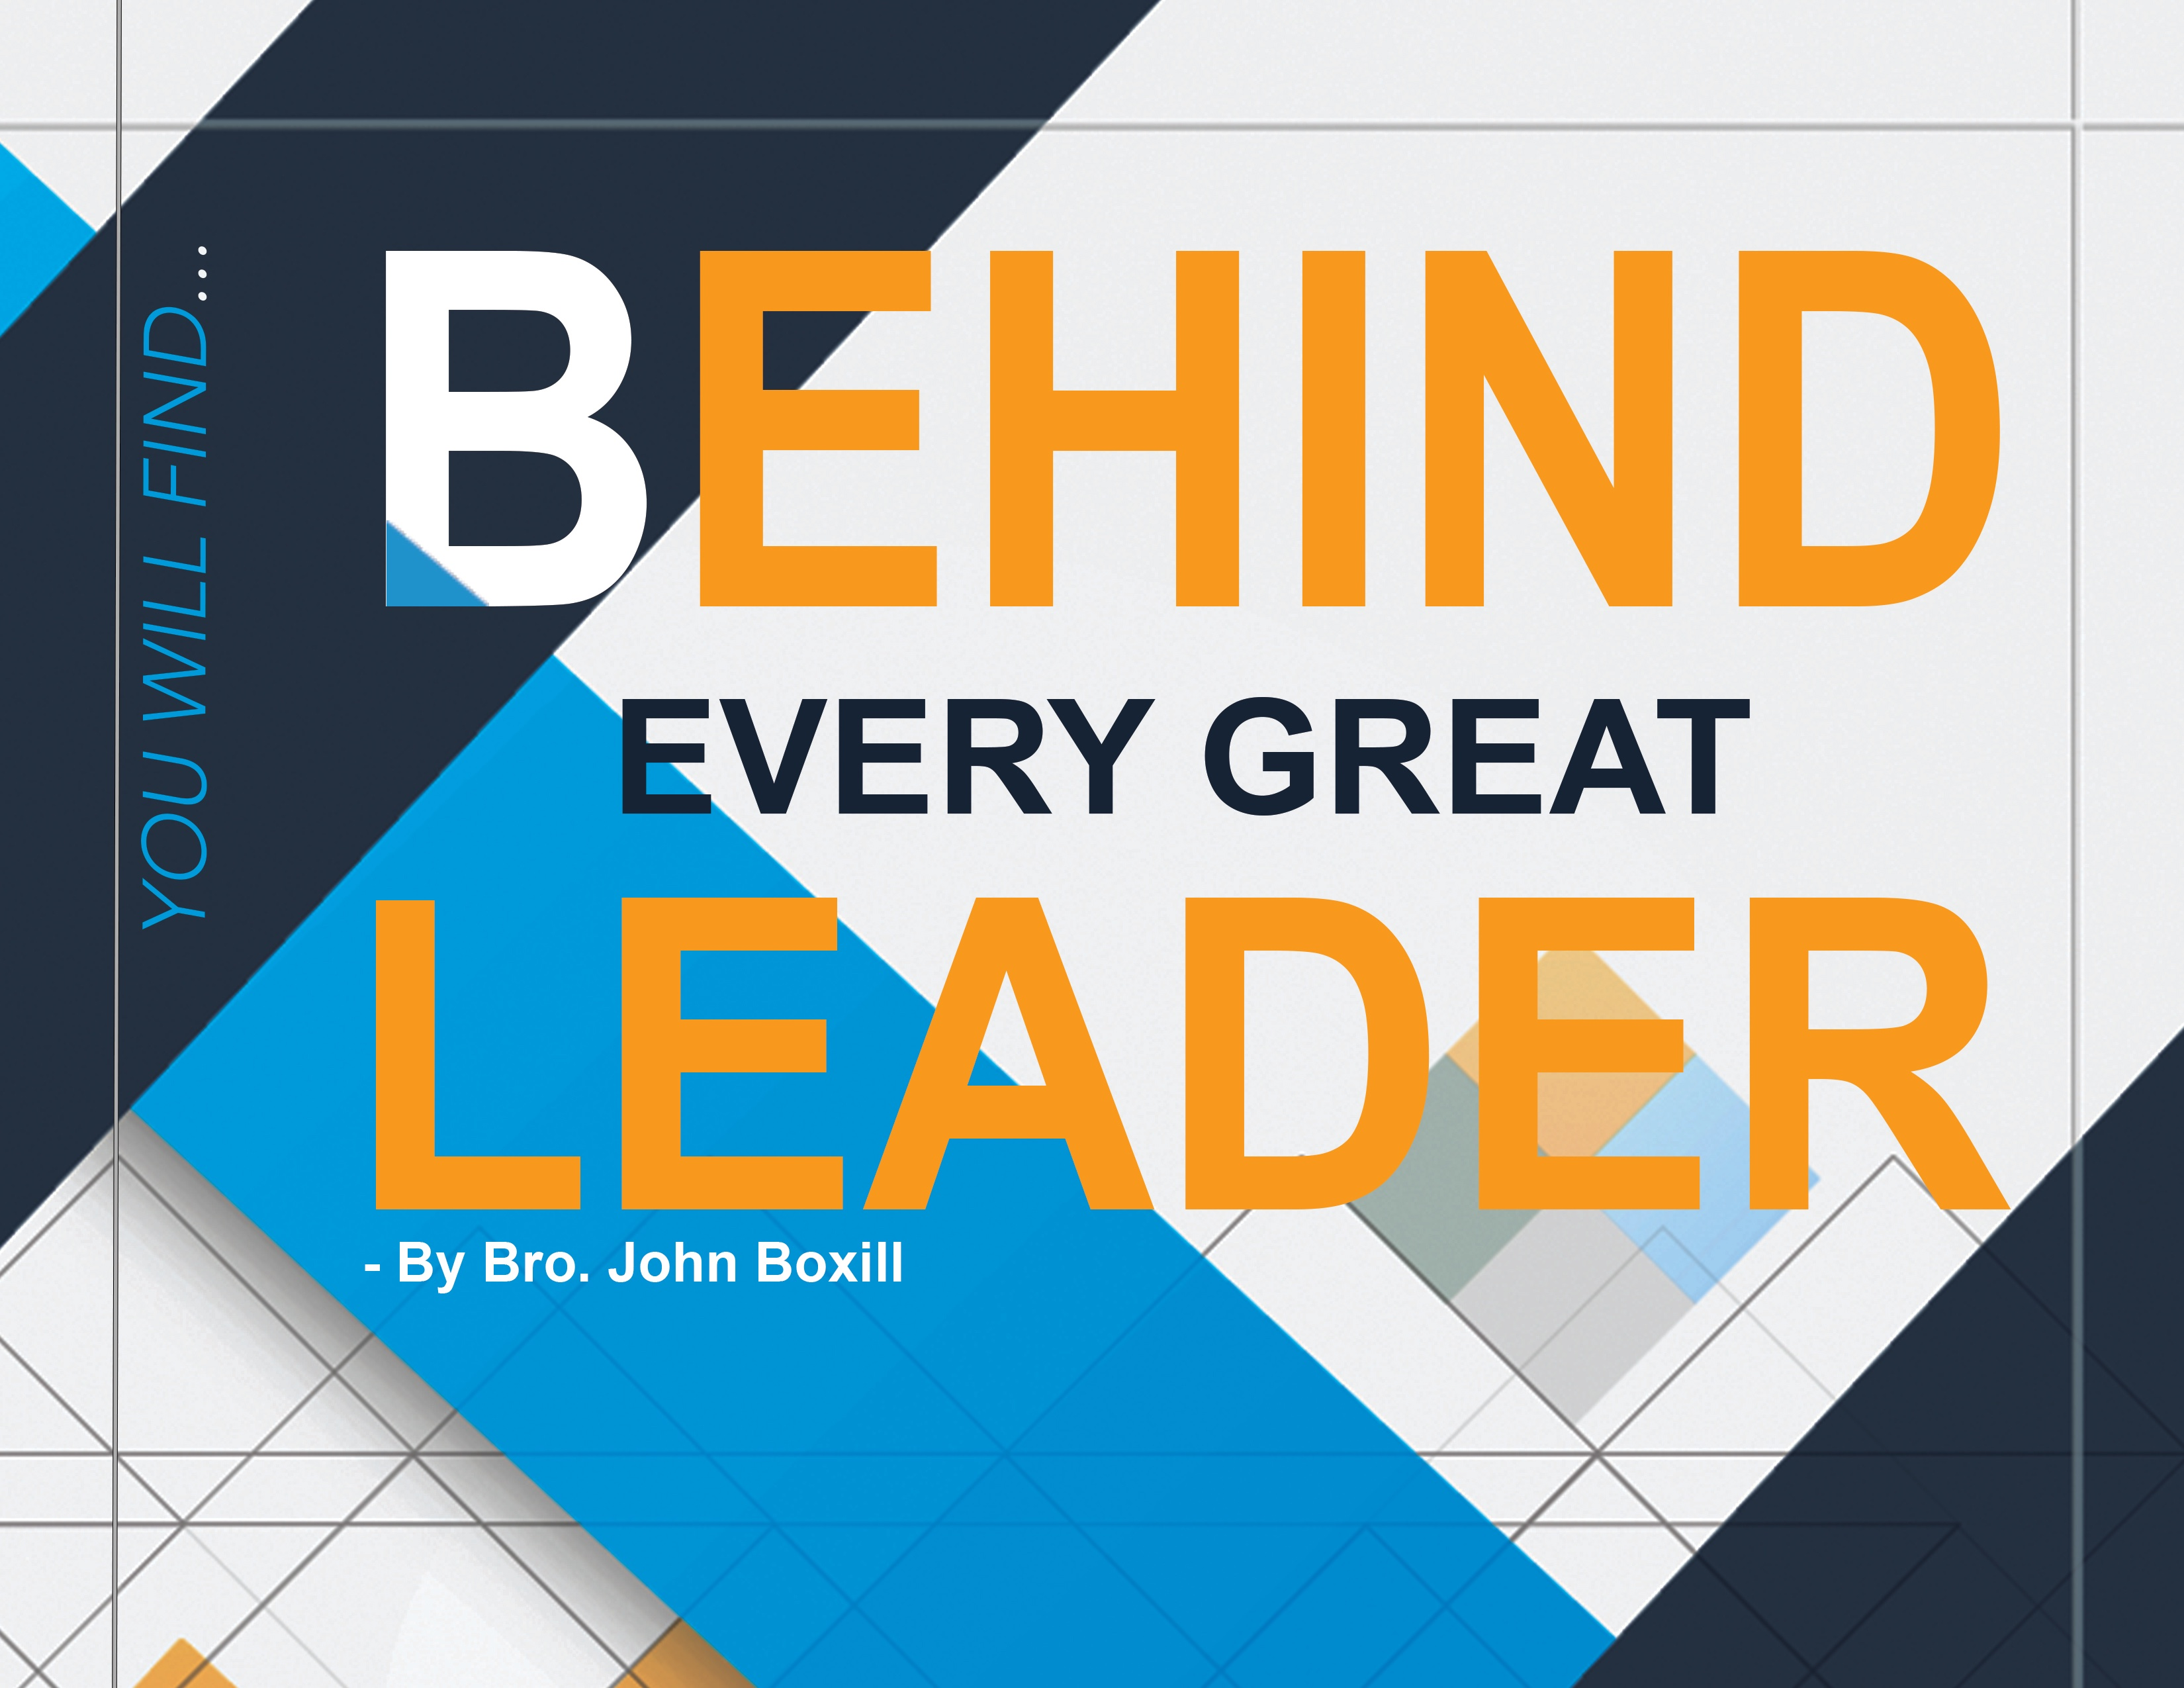 Behind Every Great Leader by John Boxill